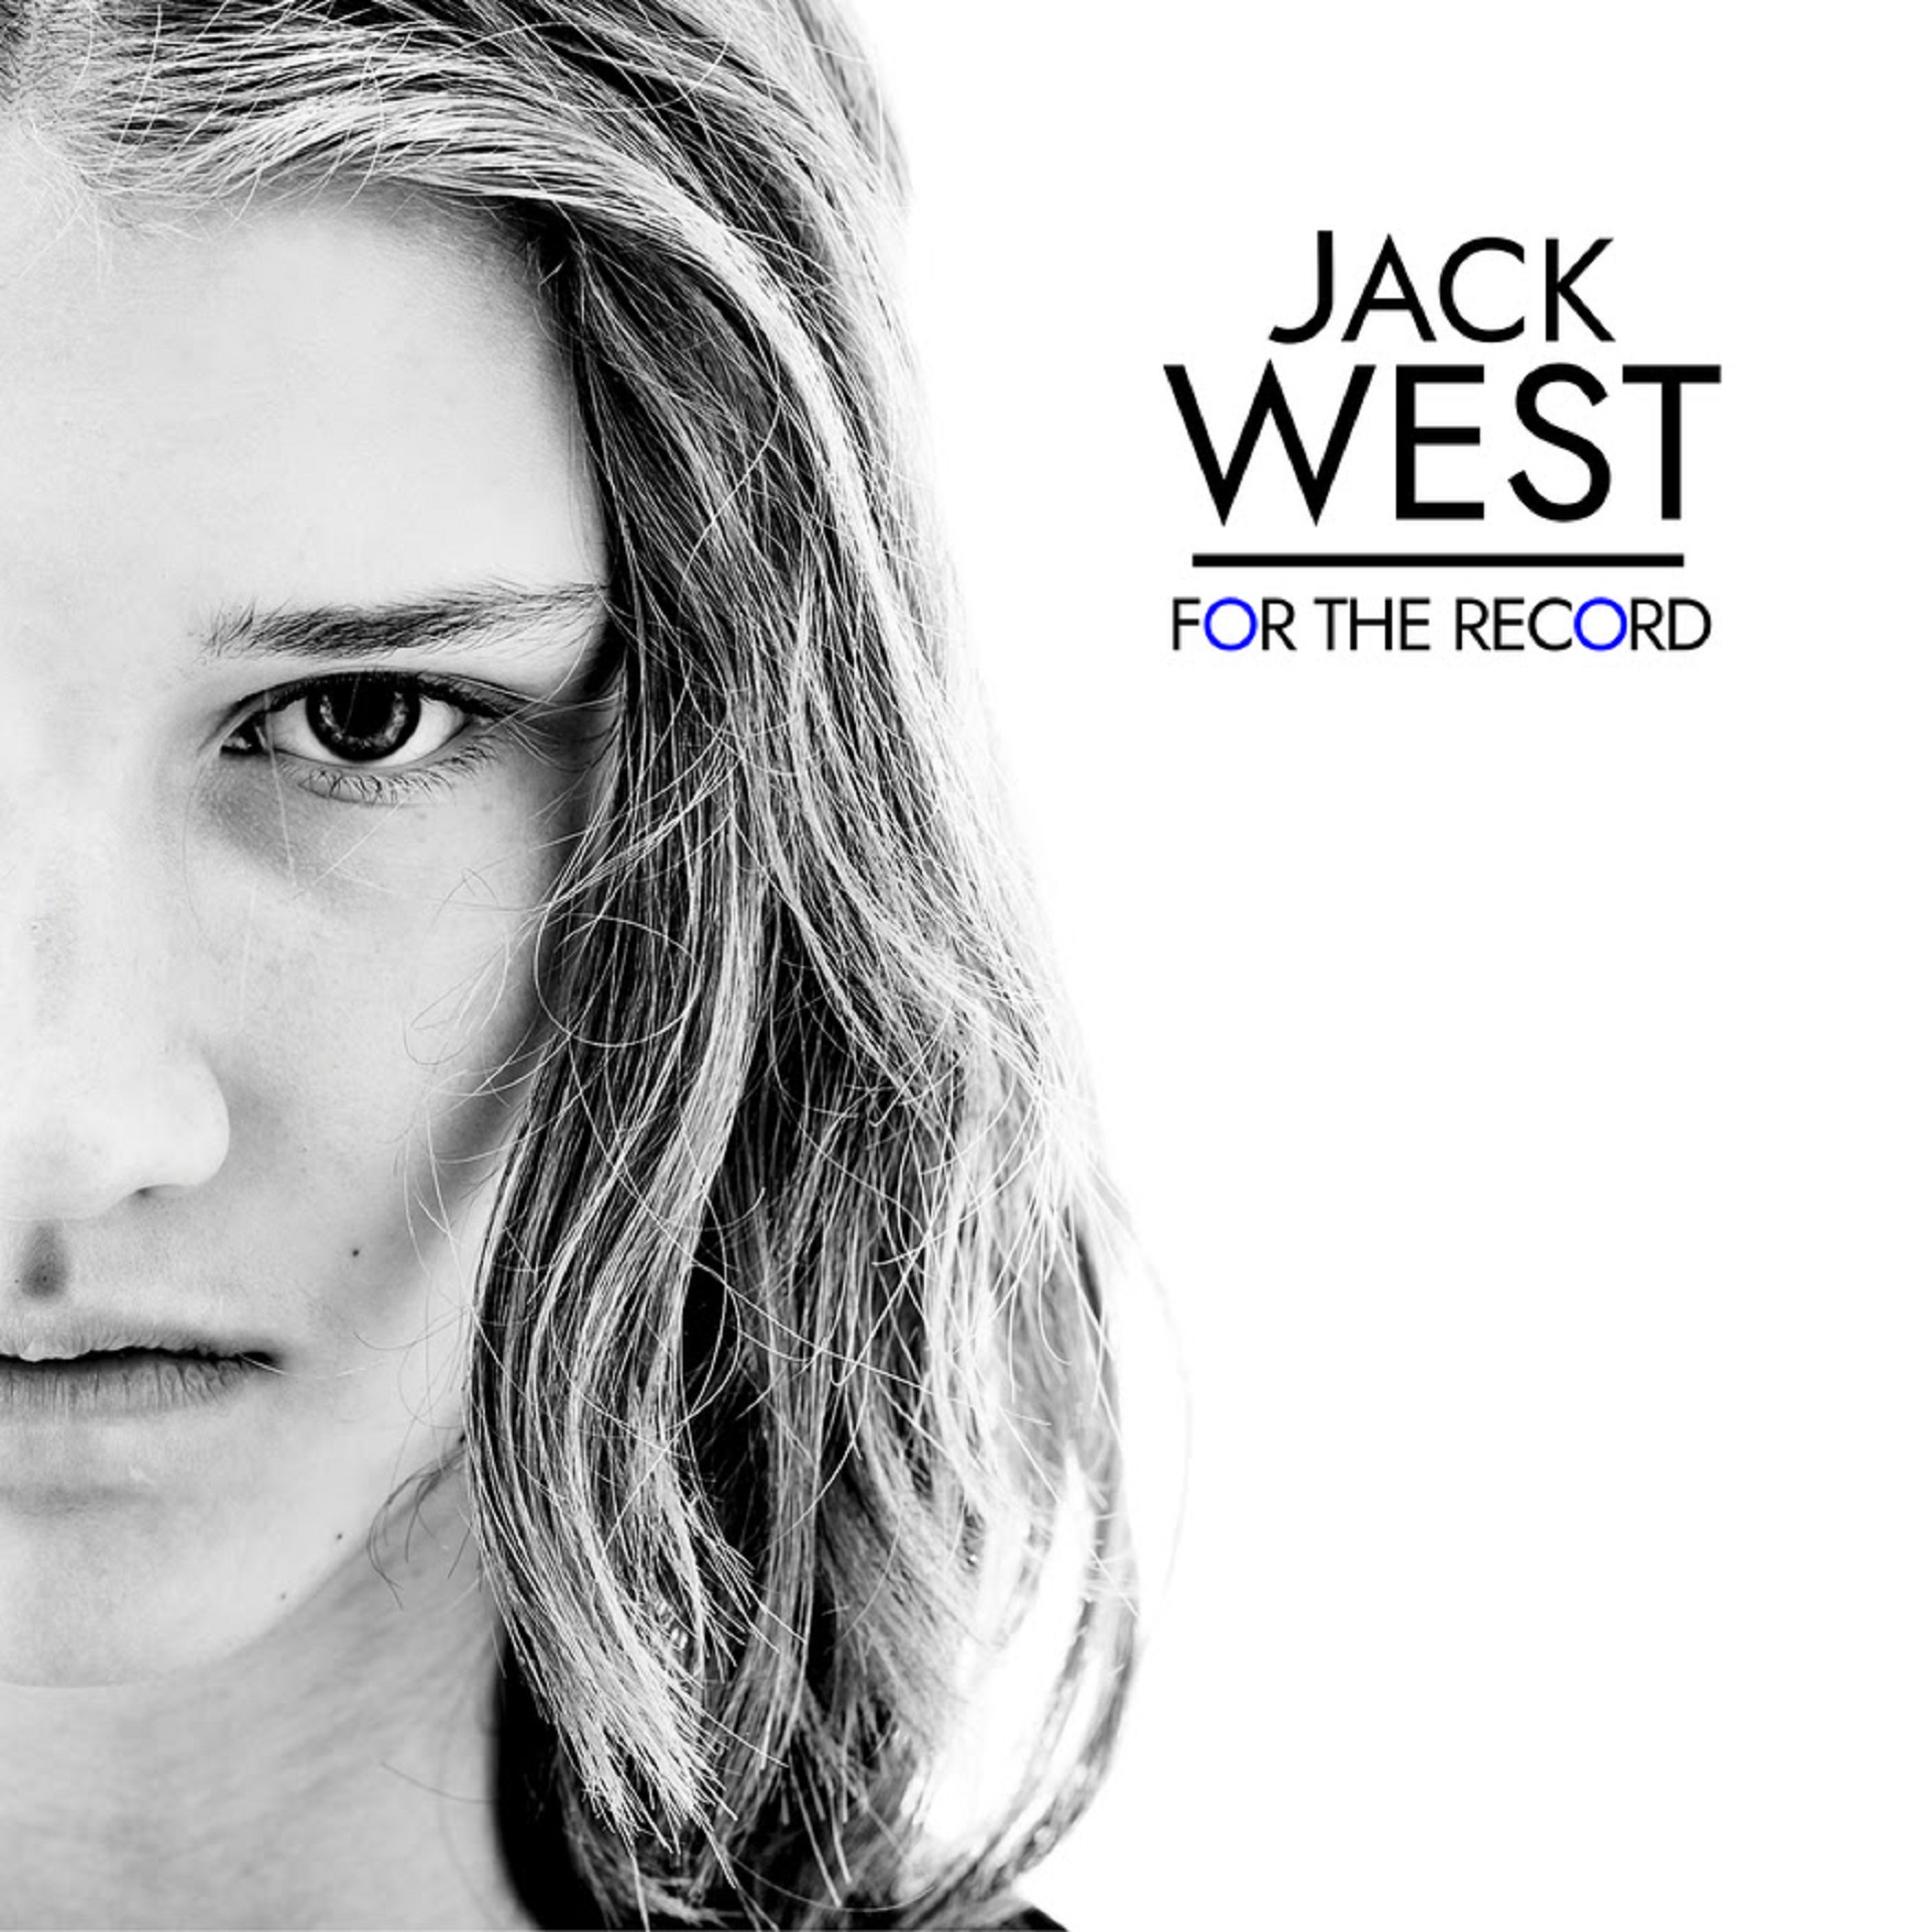 Jack West Premieres Debut Album 'FOR THE RECORD'